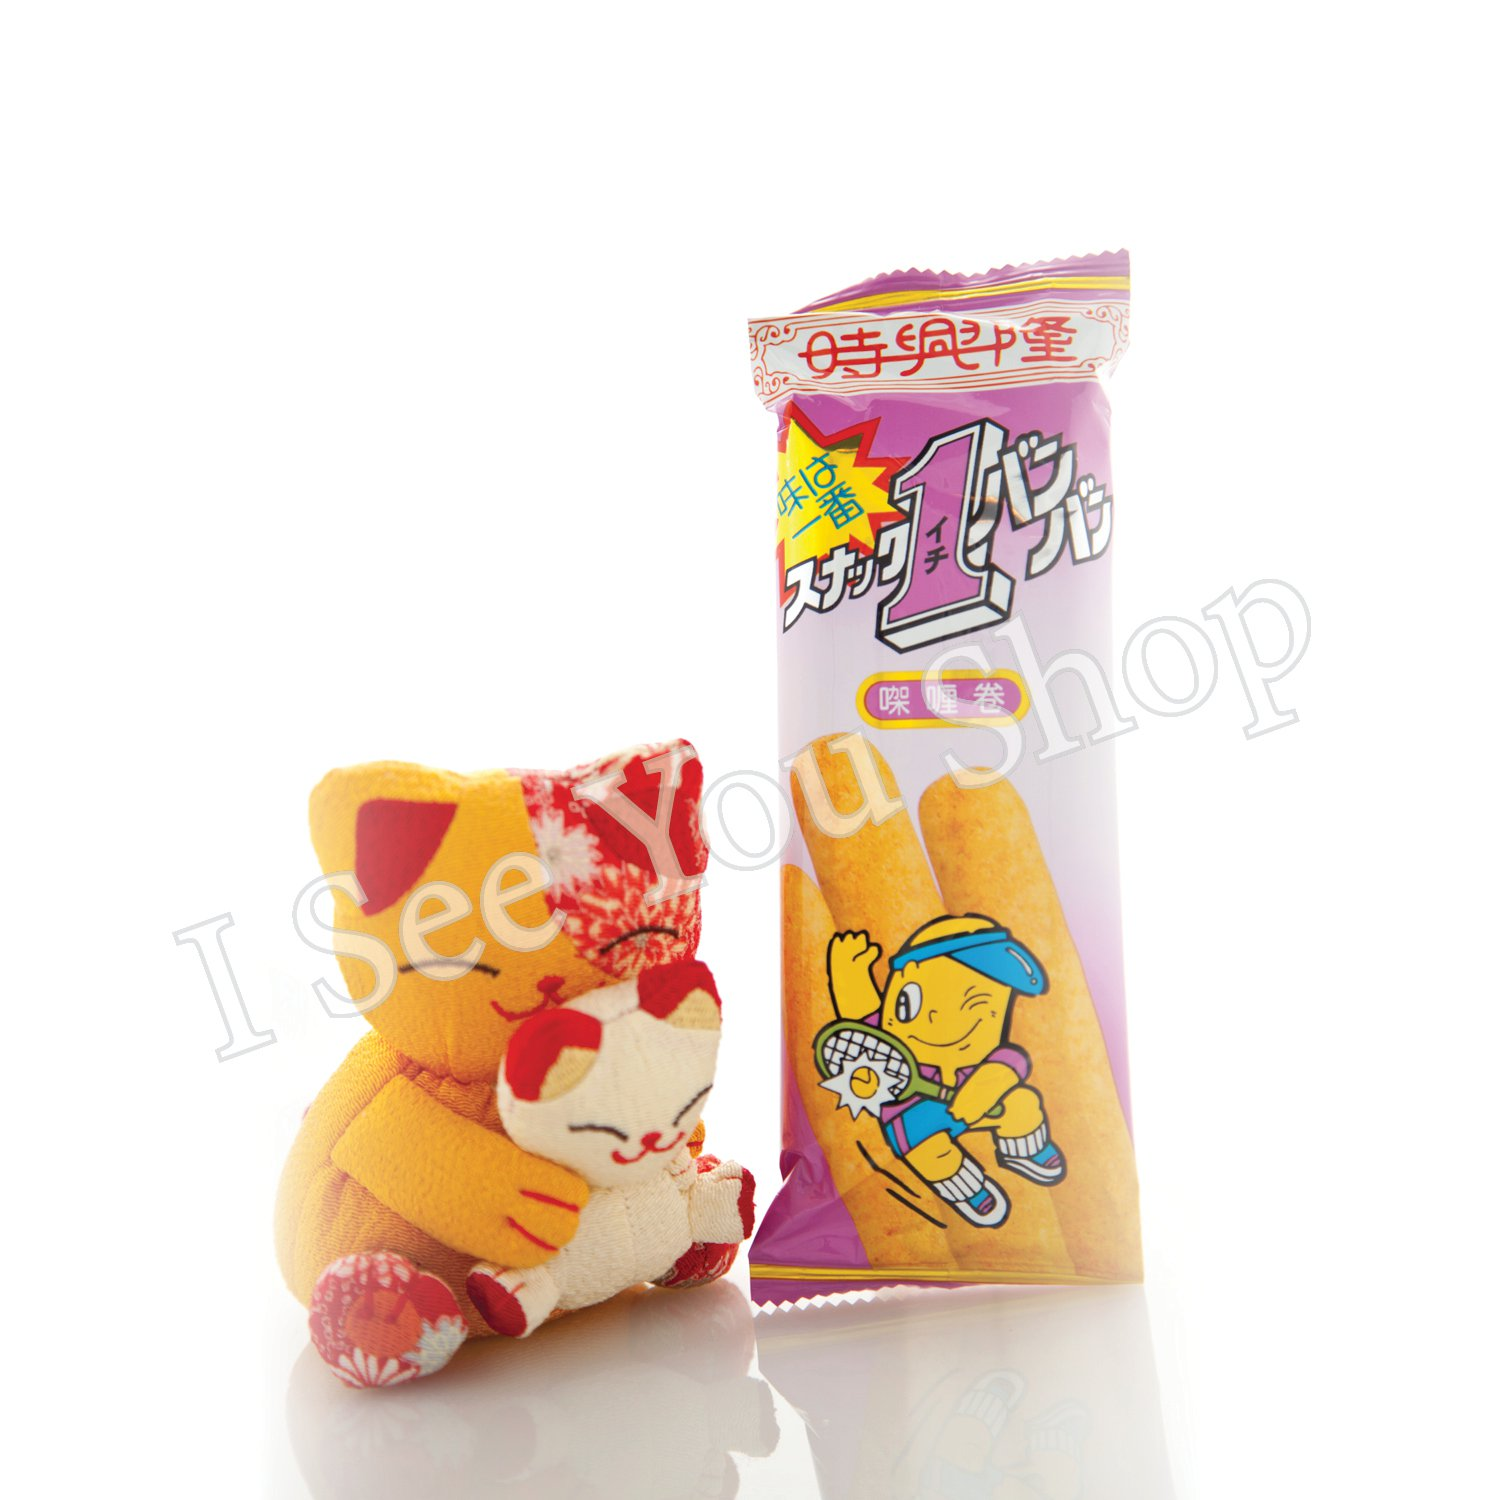 ������ Sze Hing Loong Curry Flavor Corn Roll 15g